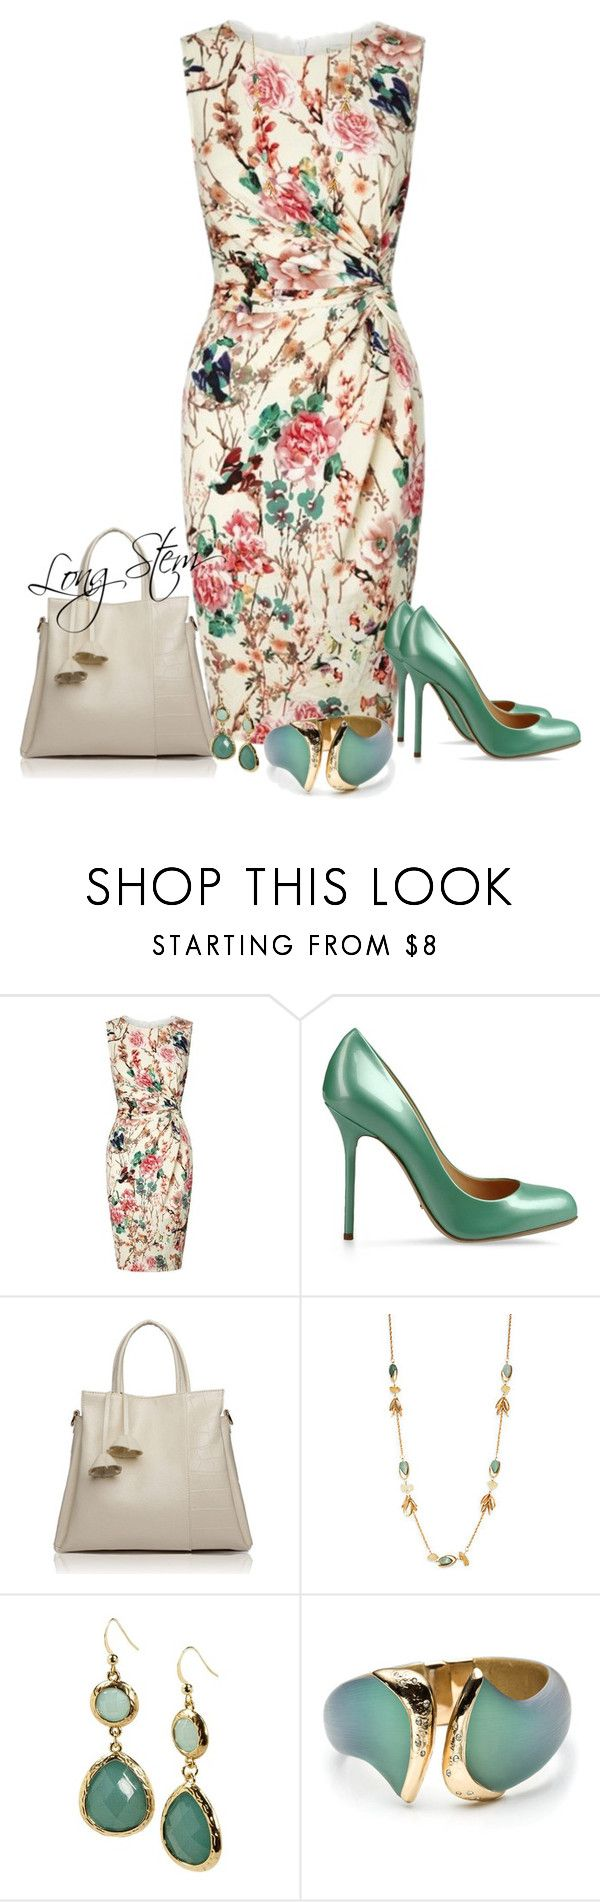 """""""2/18/17"""" by longstem ❤ liked on Polyvore featuring Lipsy, Sergio Rossi, Cara and Alexis Bittar"""